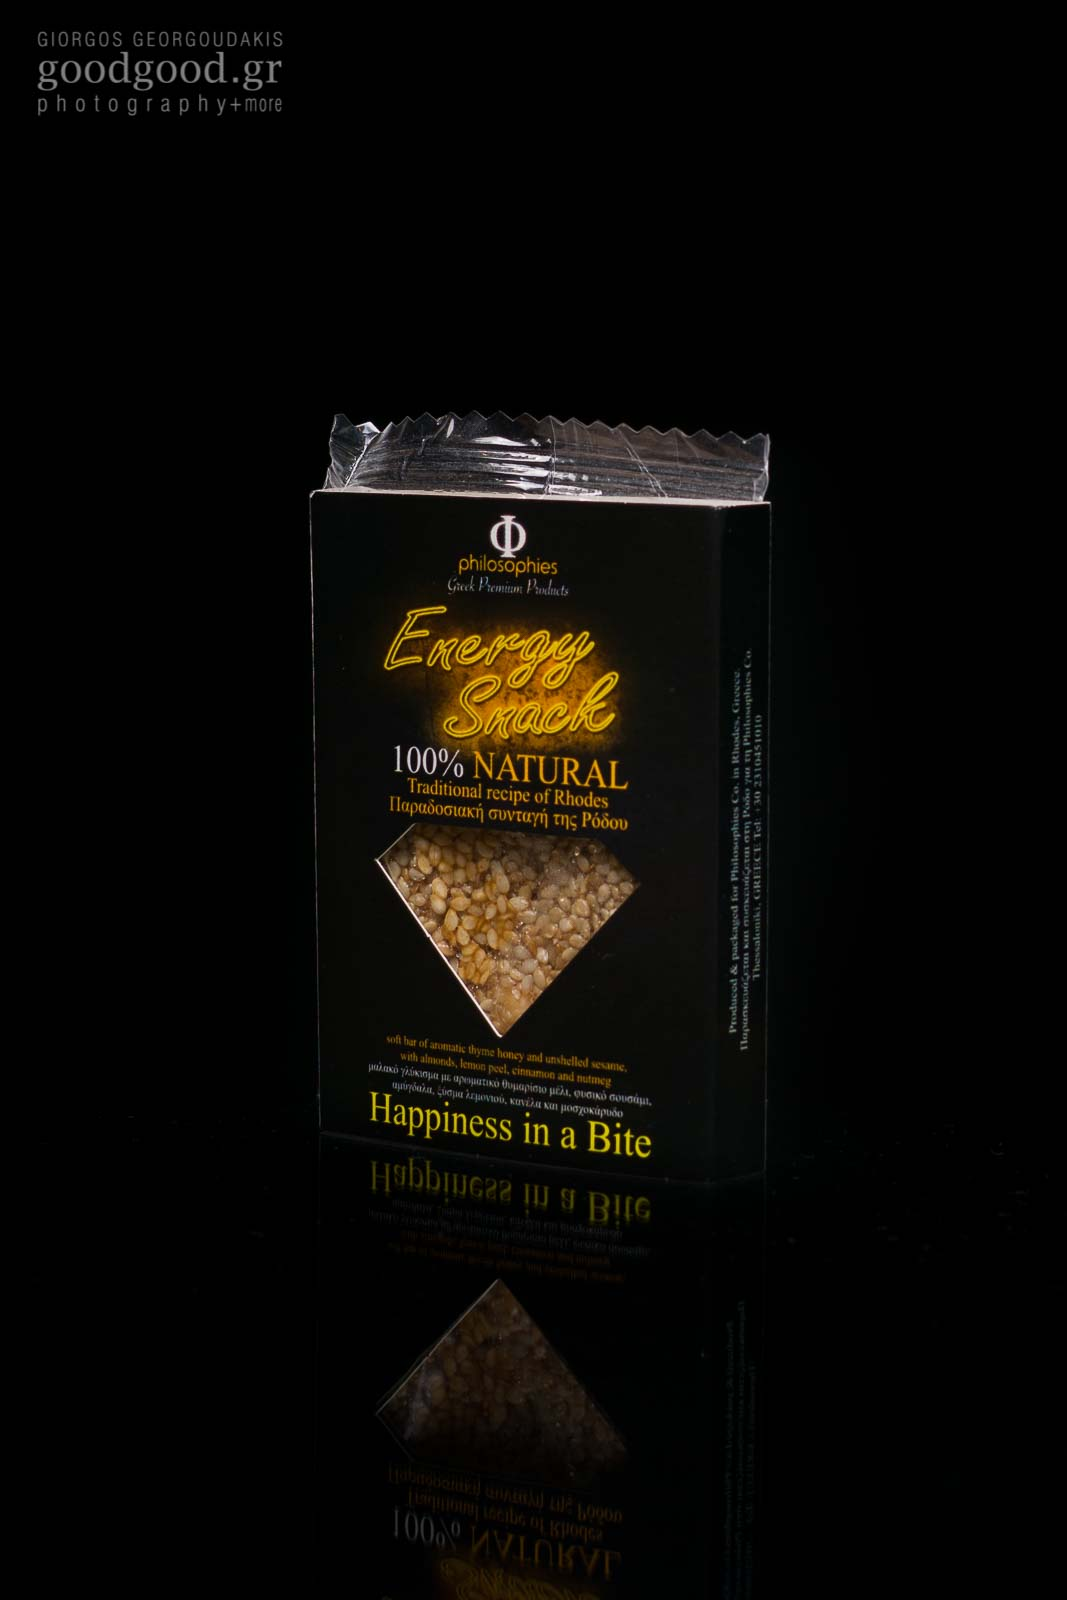 Product photoshoot in dark background of a snack bar made of sesame